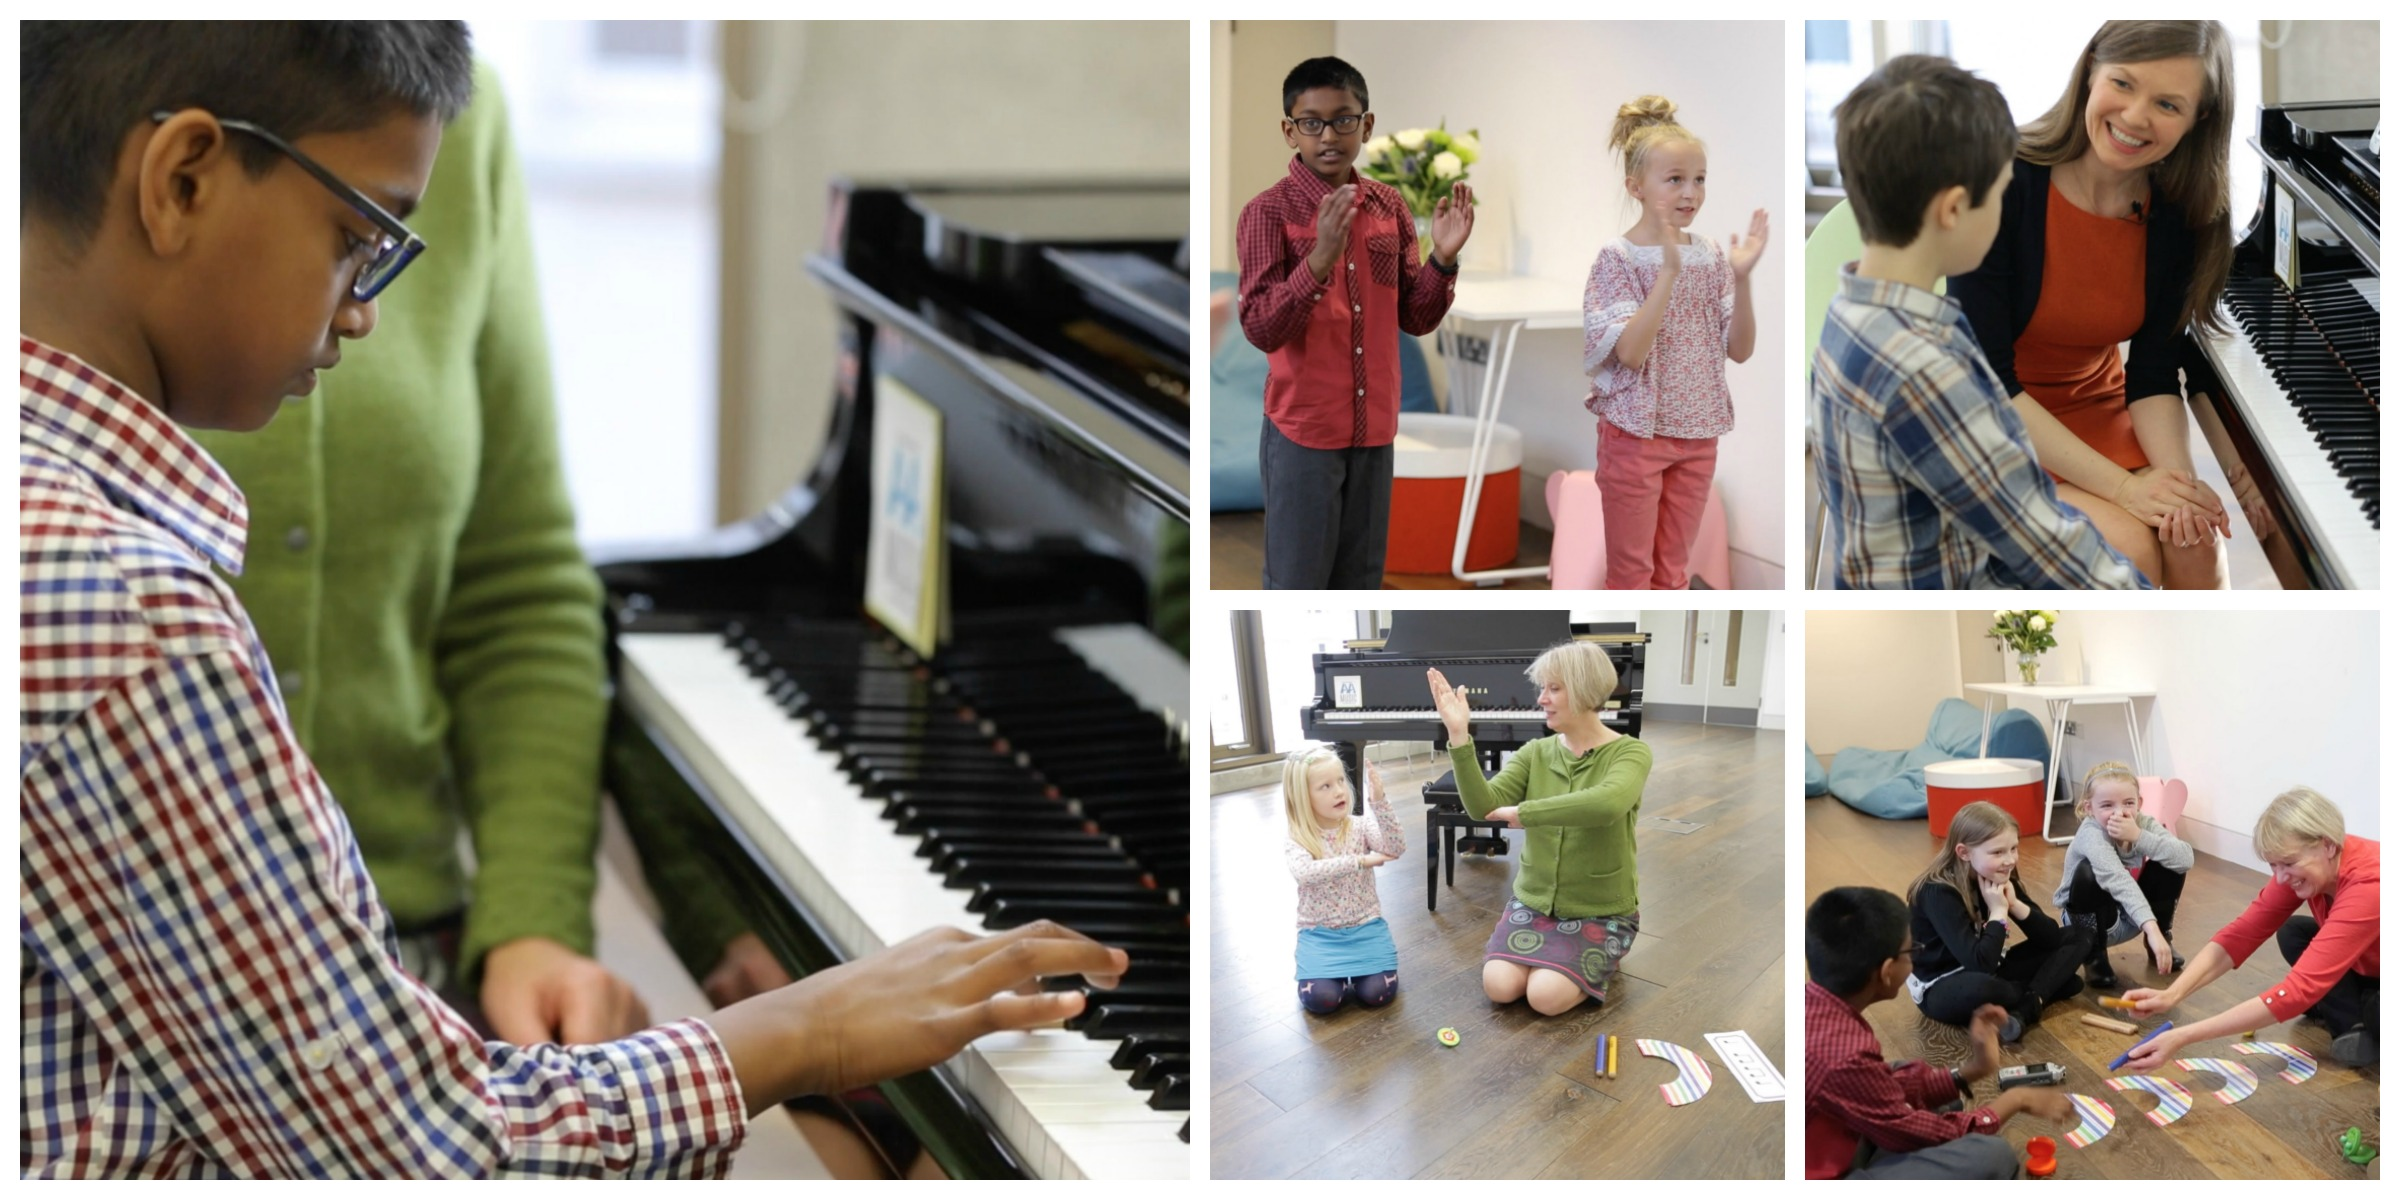 TEACHING BEGINNERS IS EASY, RIGHT? - The Curious Piano Teachers